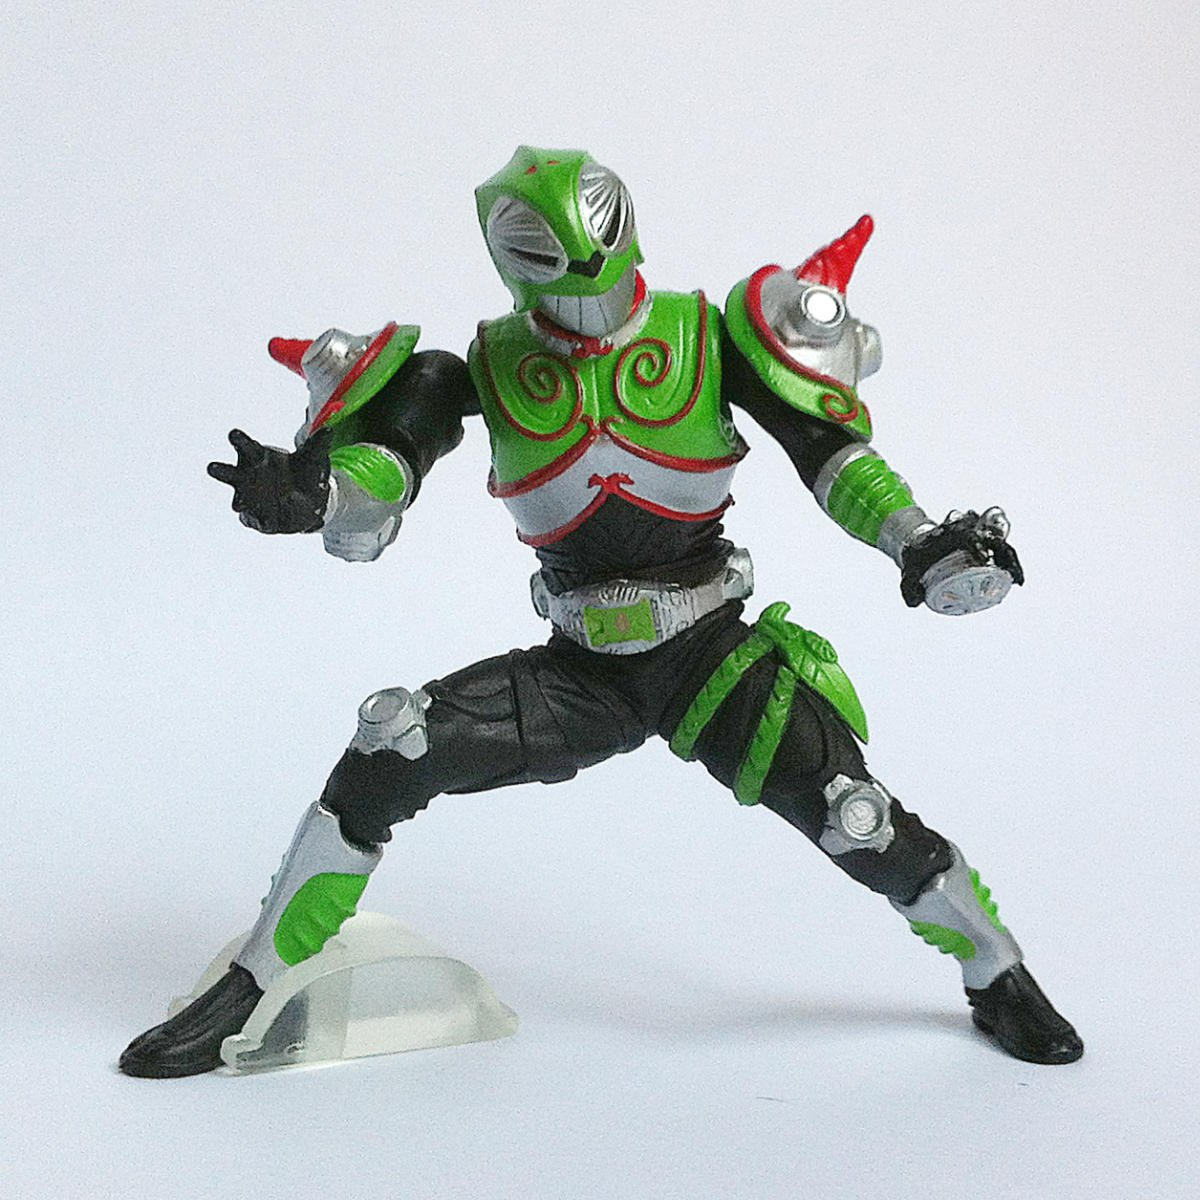 Kamen Rider Verde from Kamen Rider Action Pose 2 by Bandai